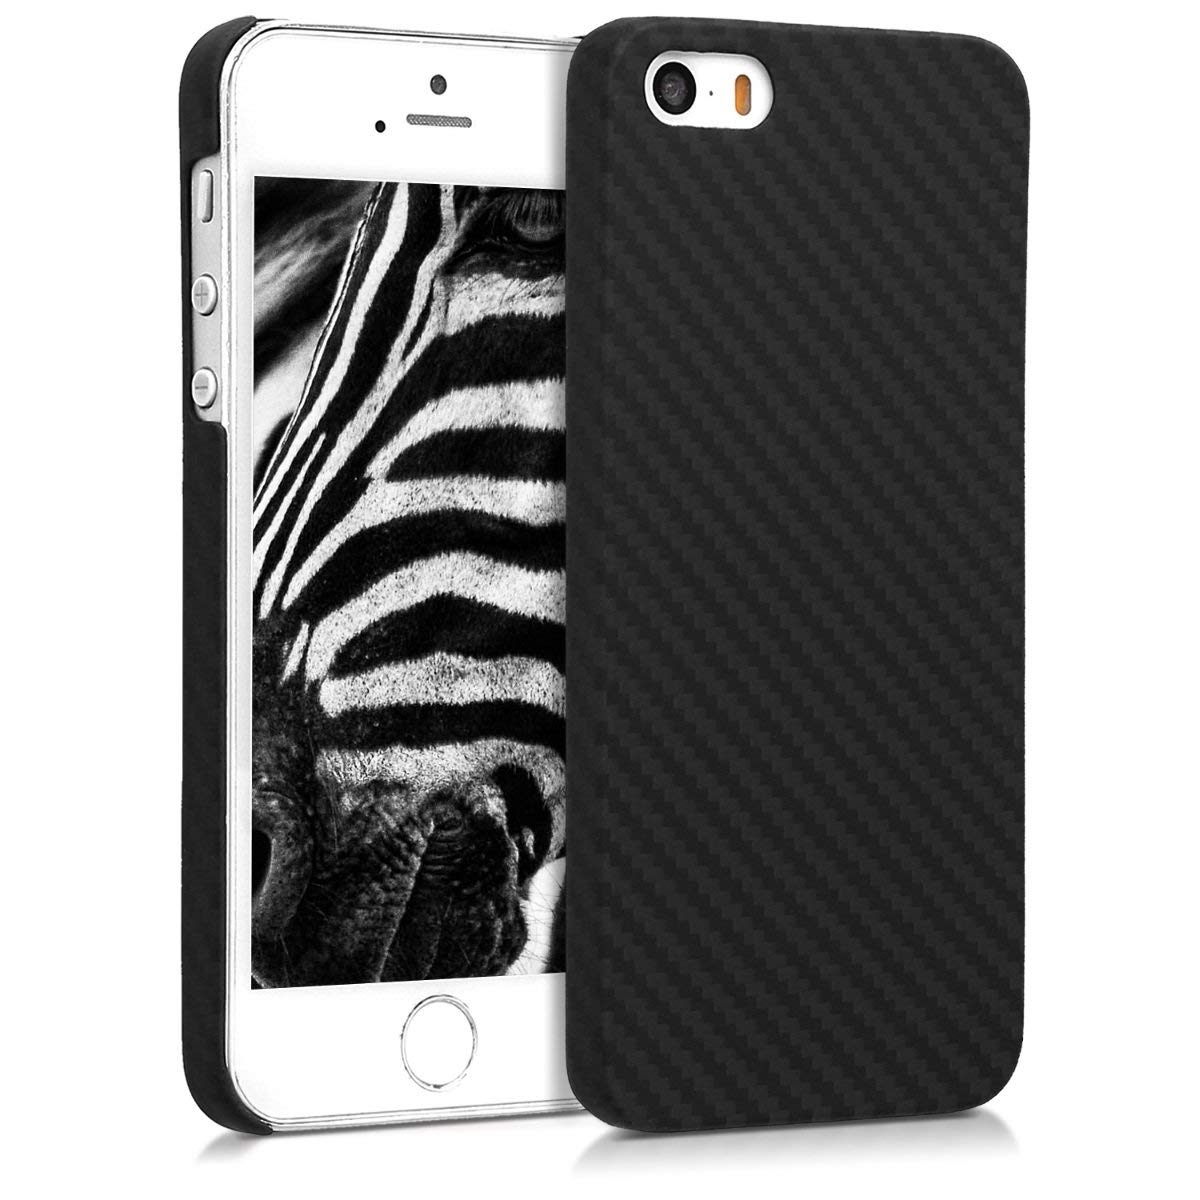 Kalibri Aramid Fiber Body - Σκληρή Θήκη iPhone SE/5S/5 - Black Matte (45097.47)